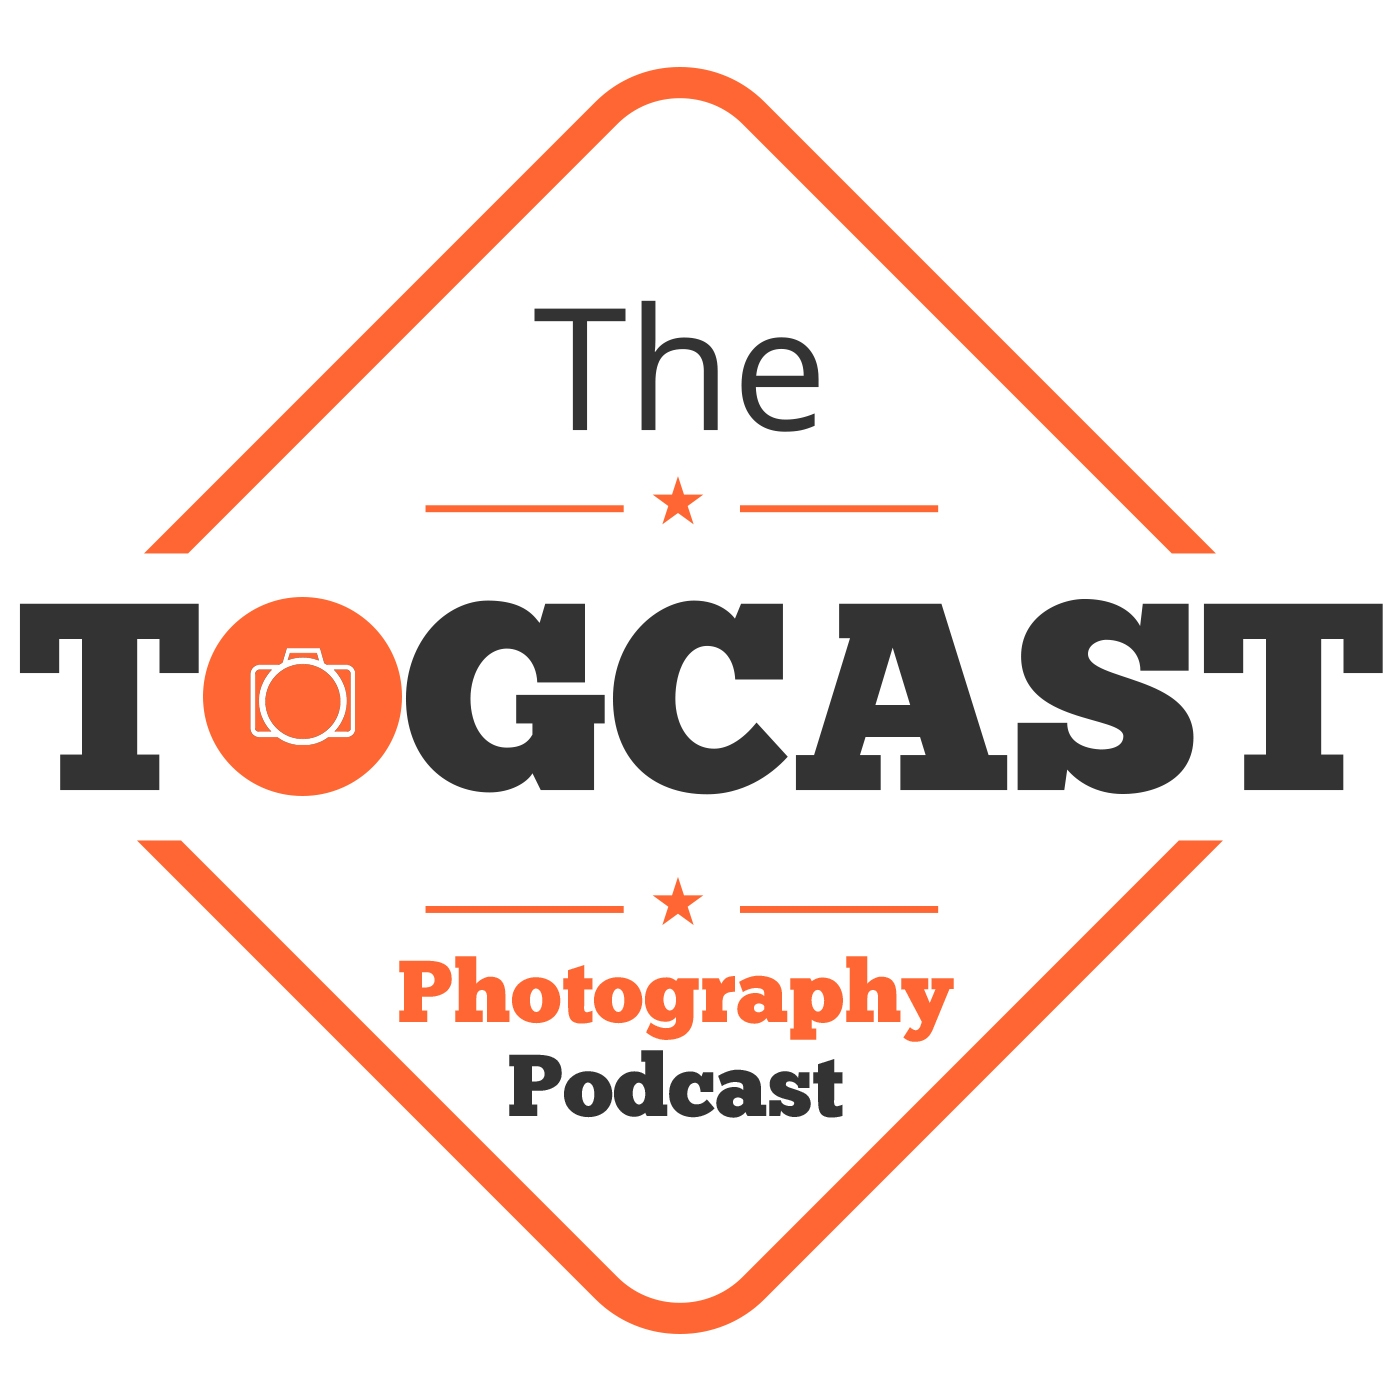 David Clapp Togcast Interview